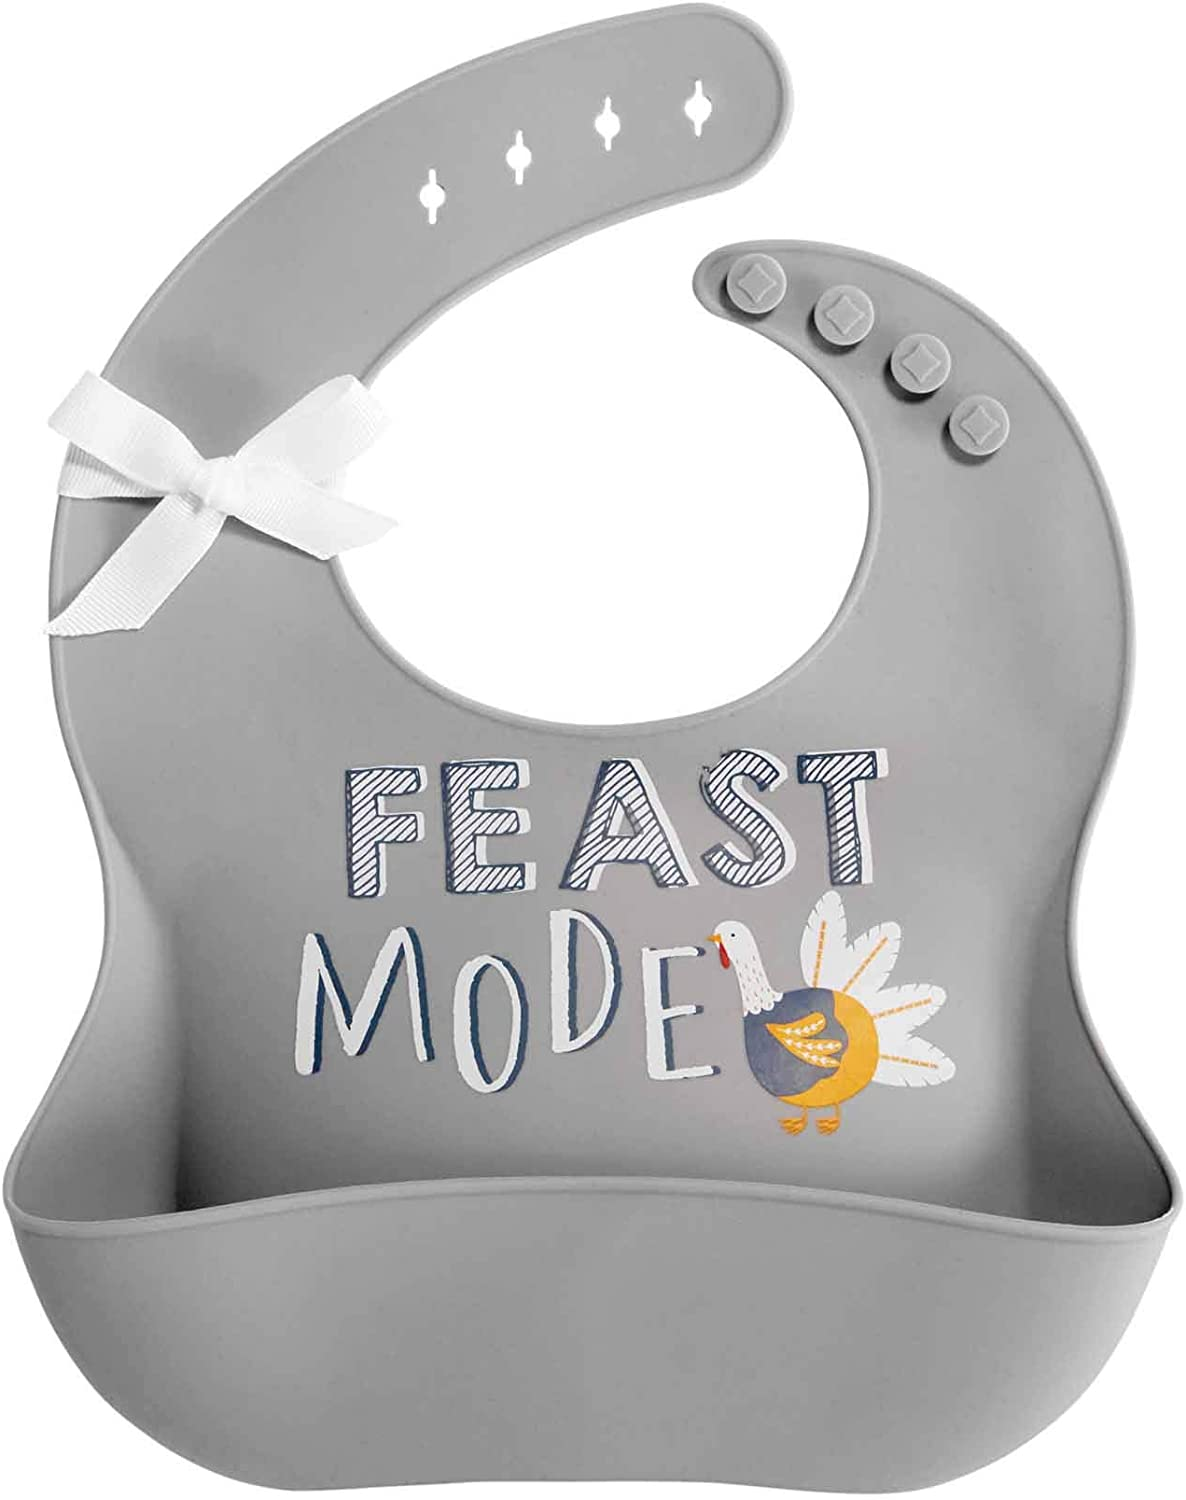 Mud Limited Special Price Pie Denver Mall Silicone unisex-baby